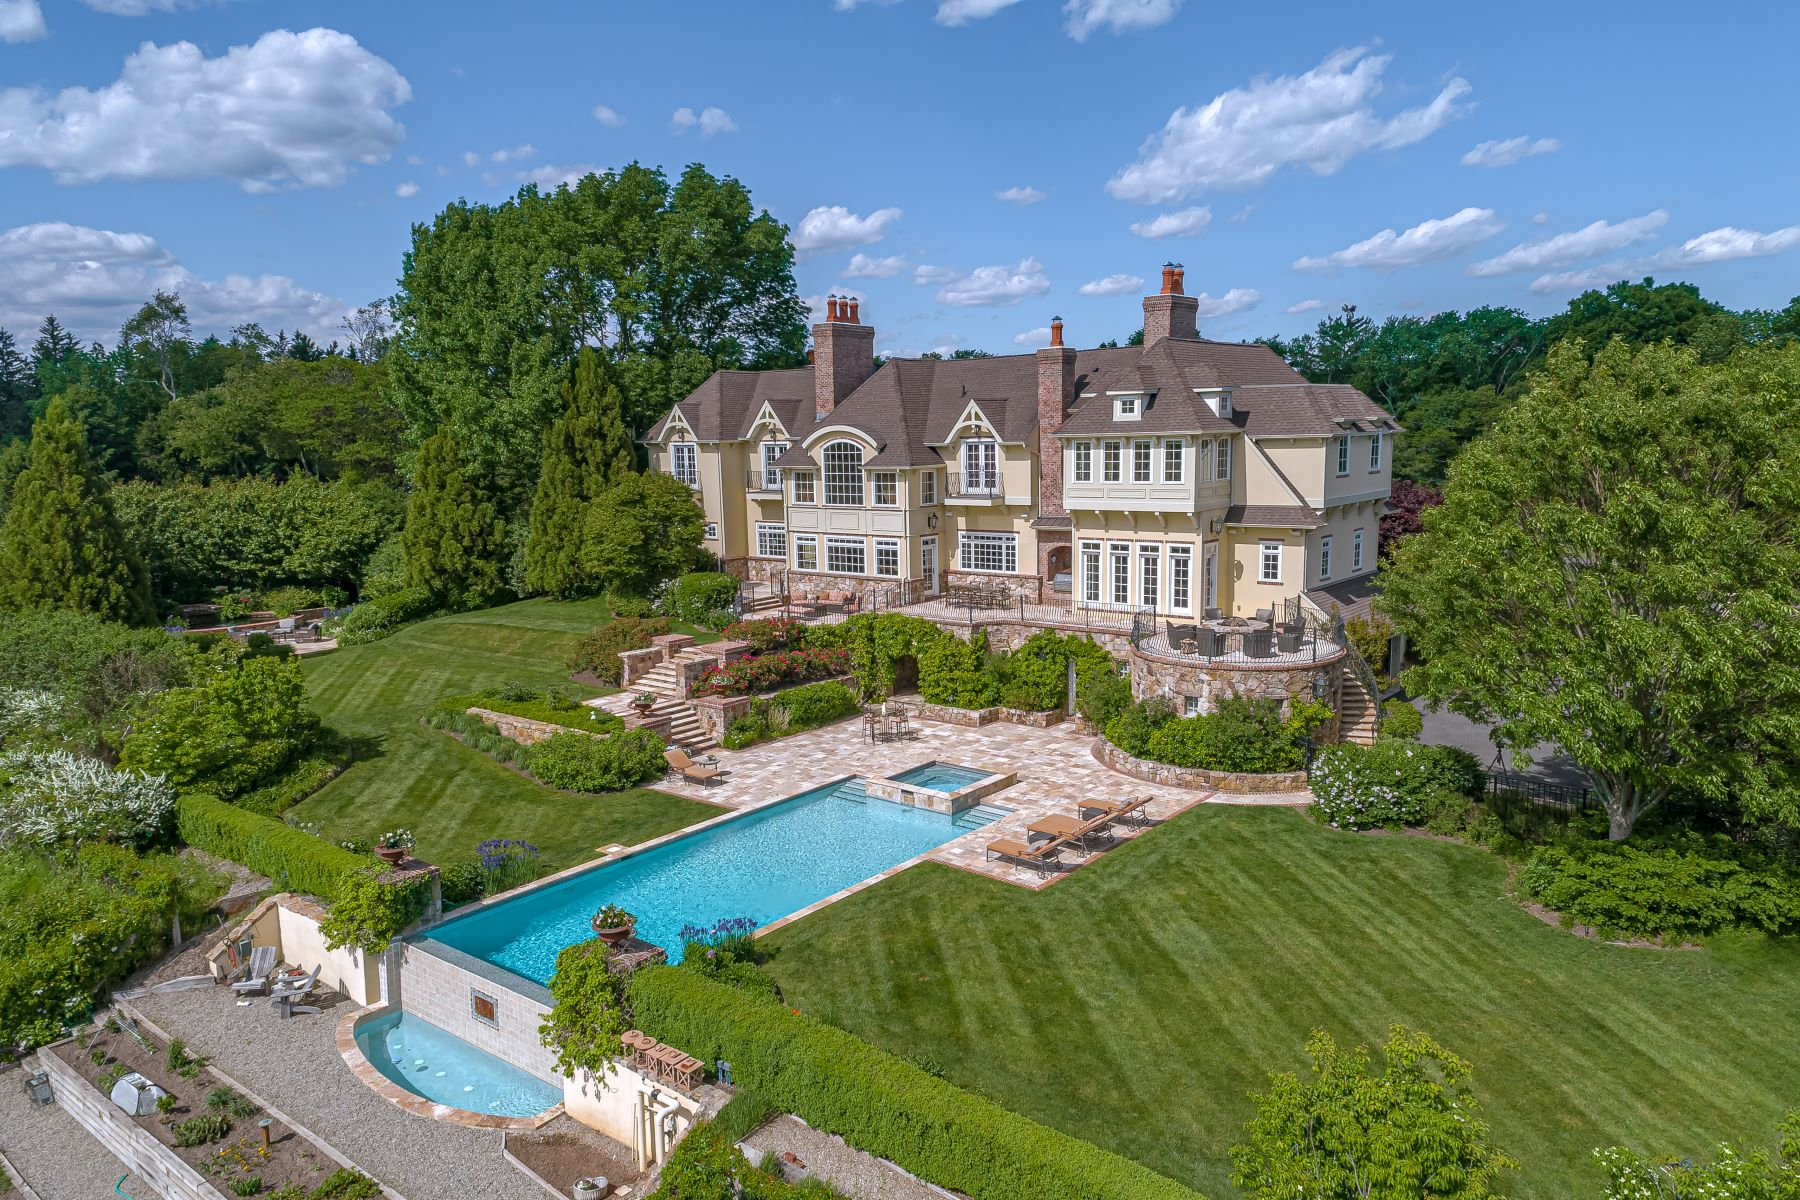 Single Family Homes for Sale at European Inspiration Balanced With American Elegance 23 Corey Lane, Mendham, New Jersey 07945 United States